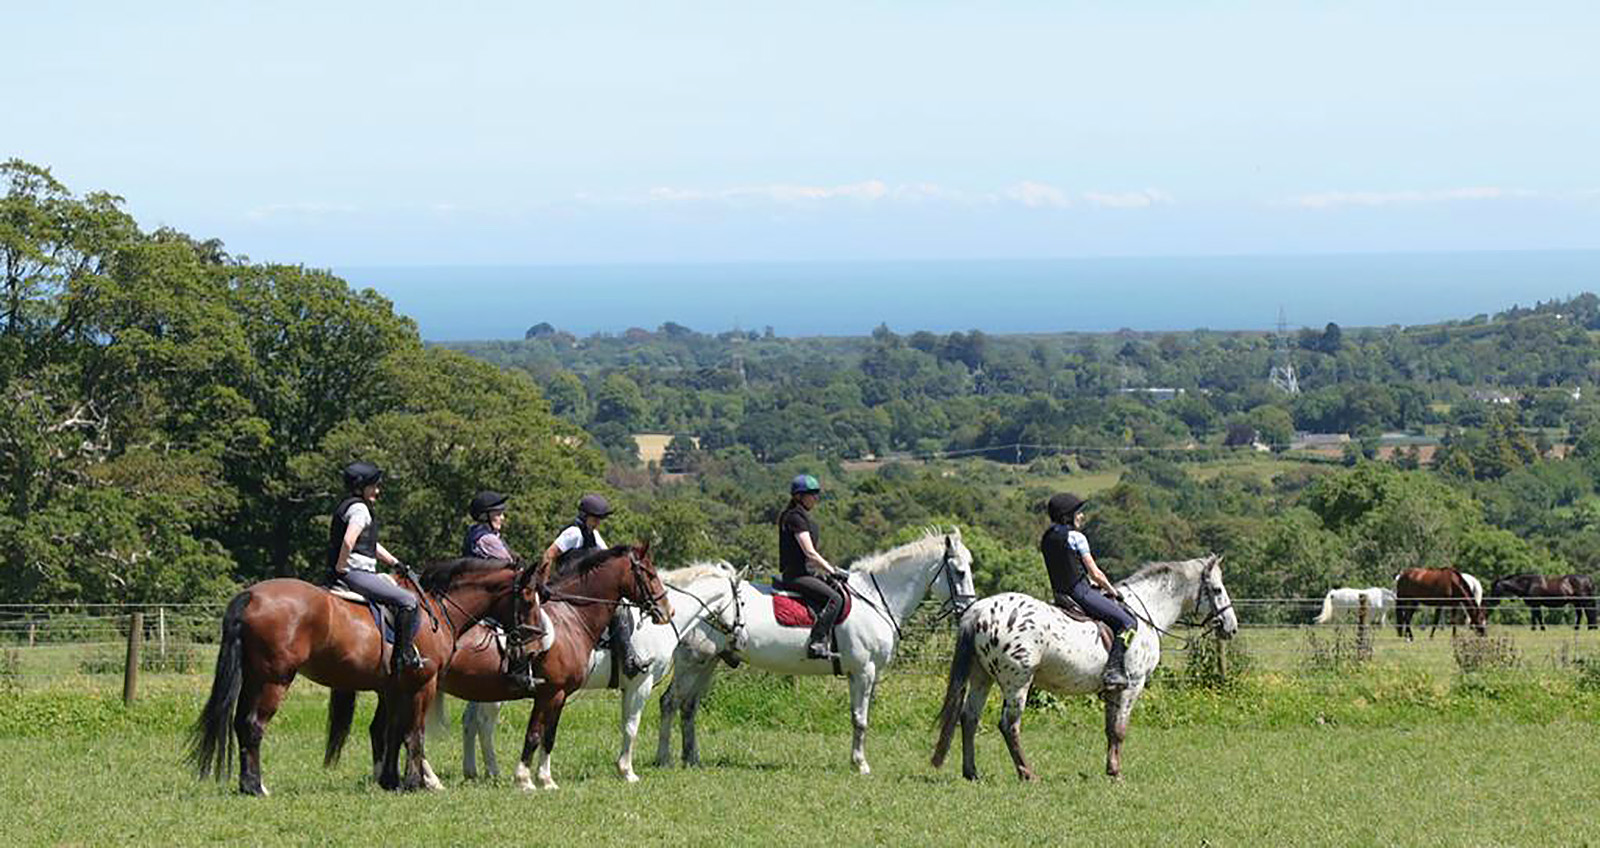 Waiting their turn on the XC jumping ride Bel-Air Equestrian Centre Ireland